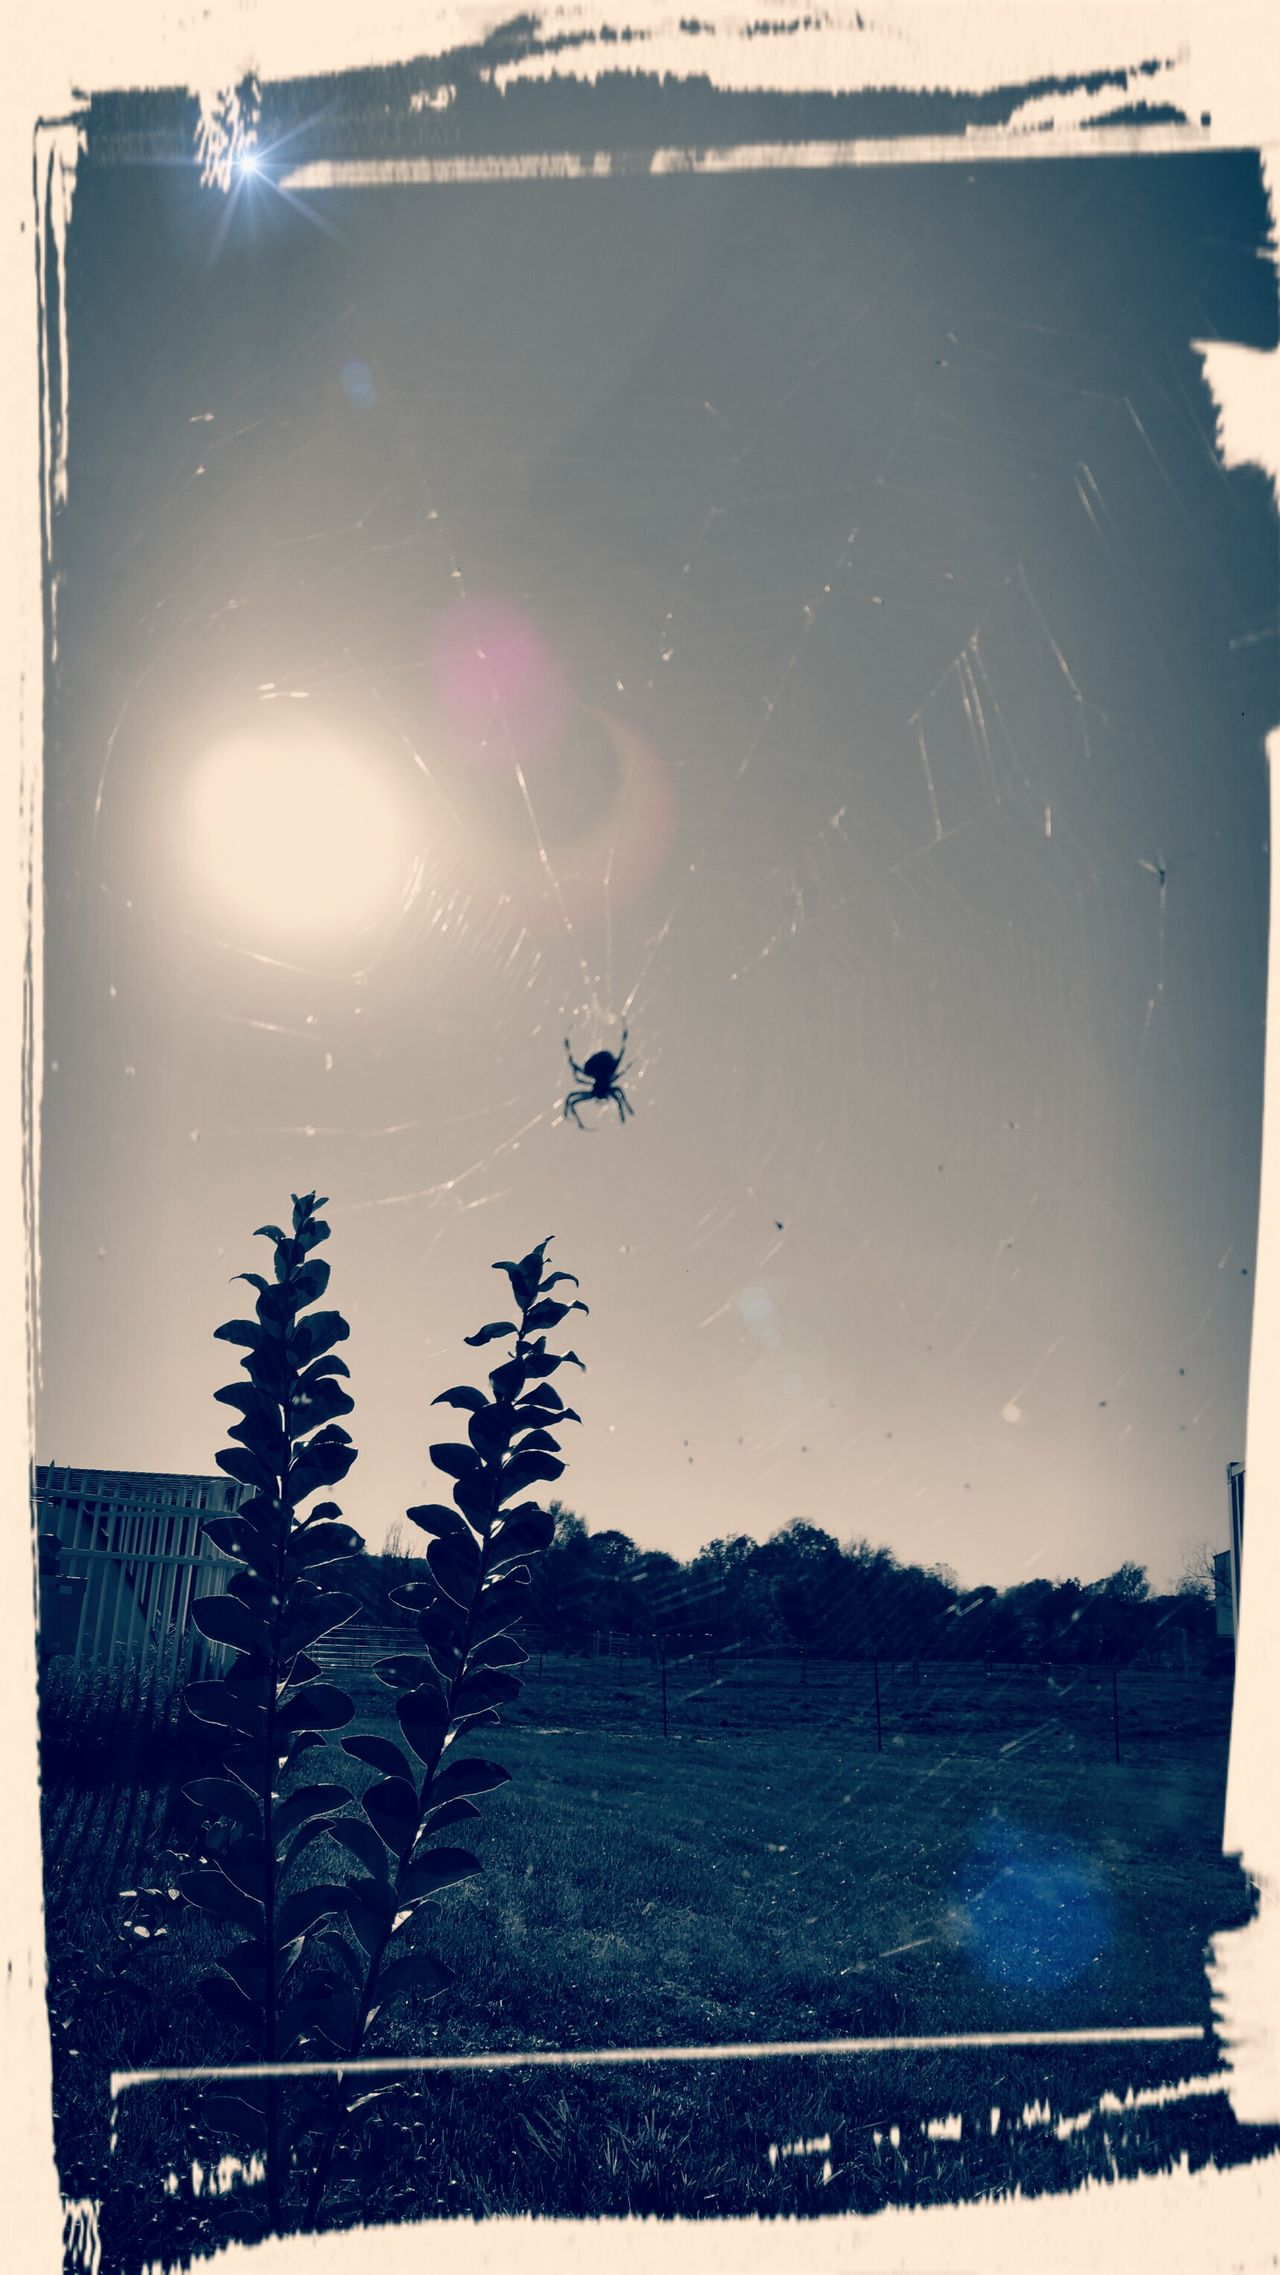 Spidersweb Spiders Nest Spiders Outdoors No People Nature Tree Star - Space Sky Astronomy Day